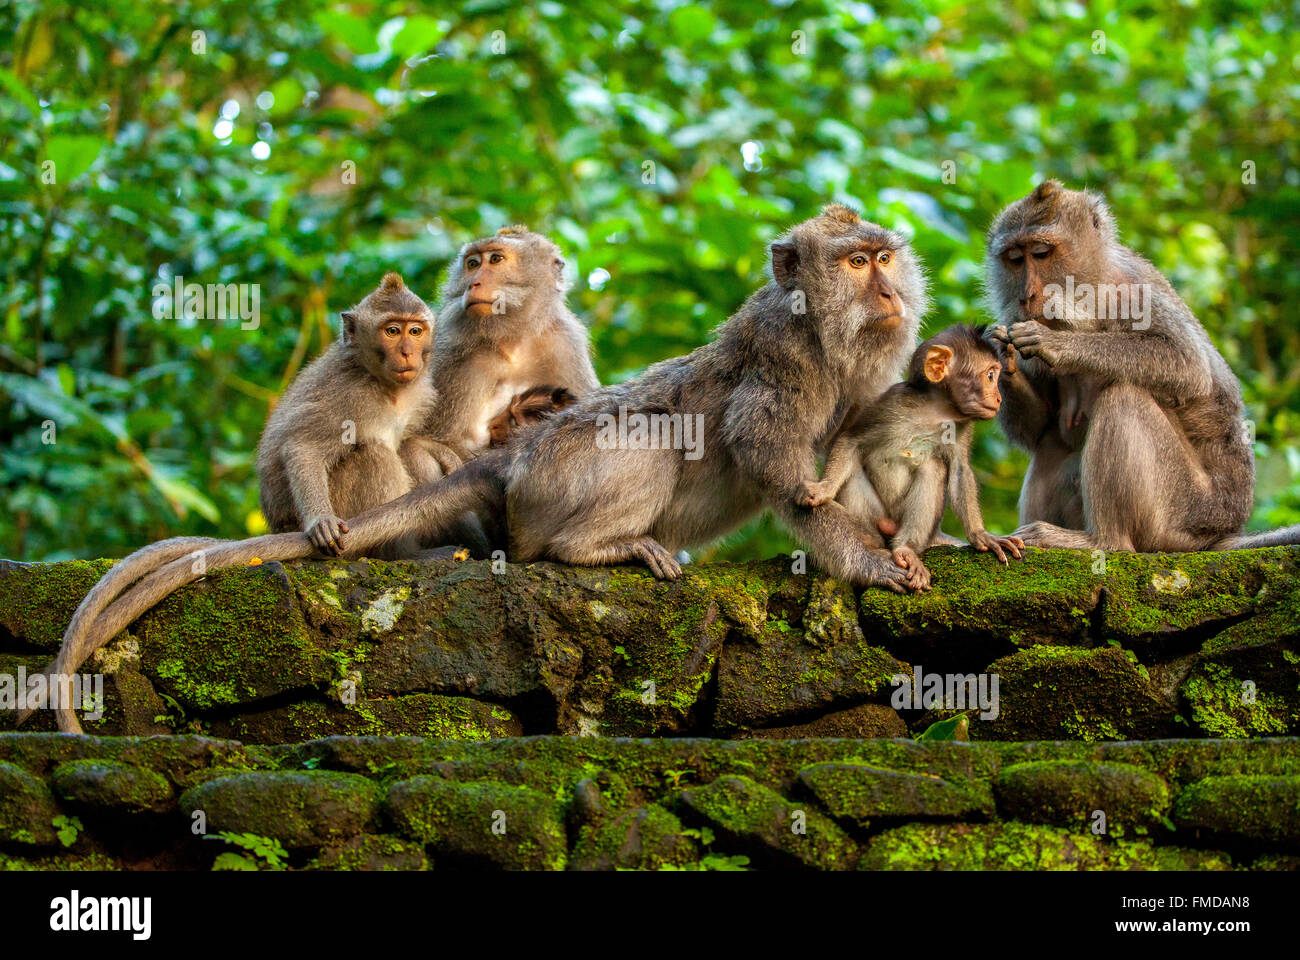 Crab-eating macaque (Macaca fascicularis), monkey family with baby monkey sitting on a stone wall grooming, Ubud - Stock Image